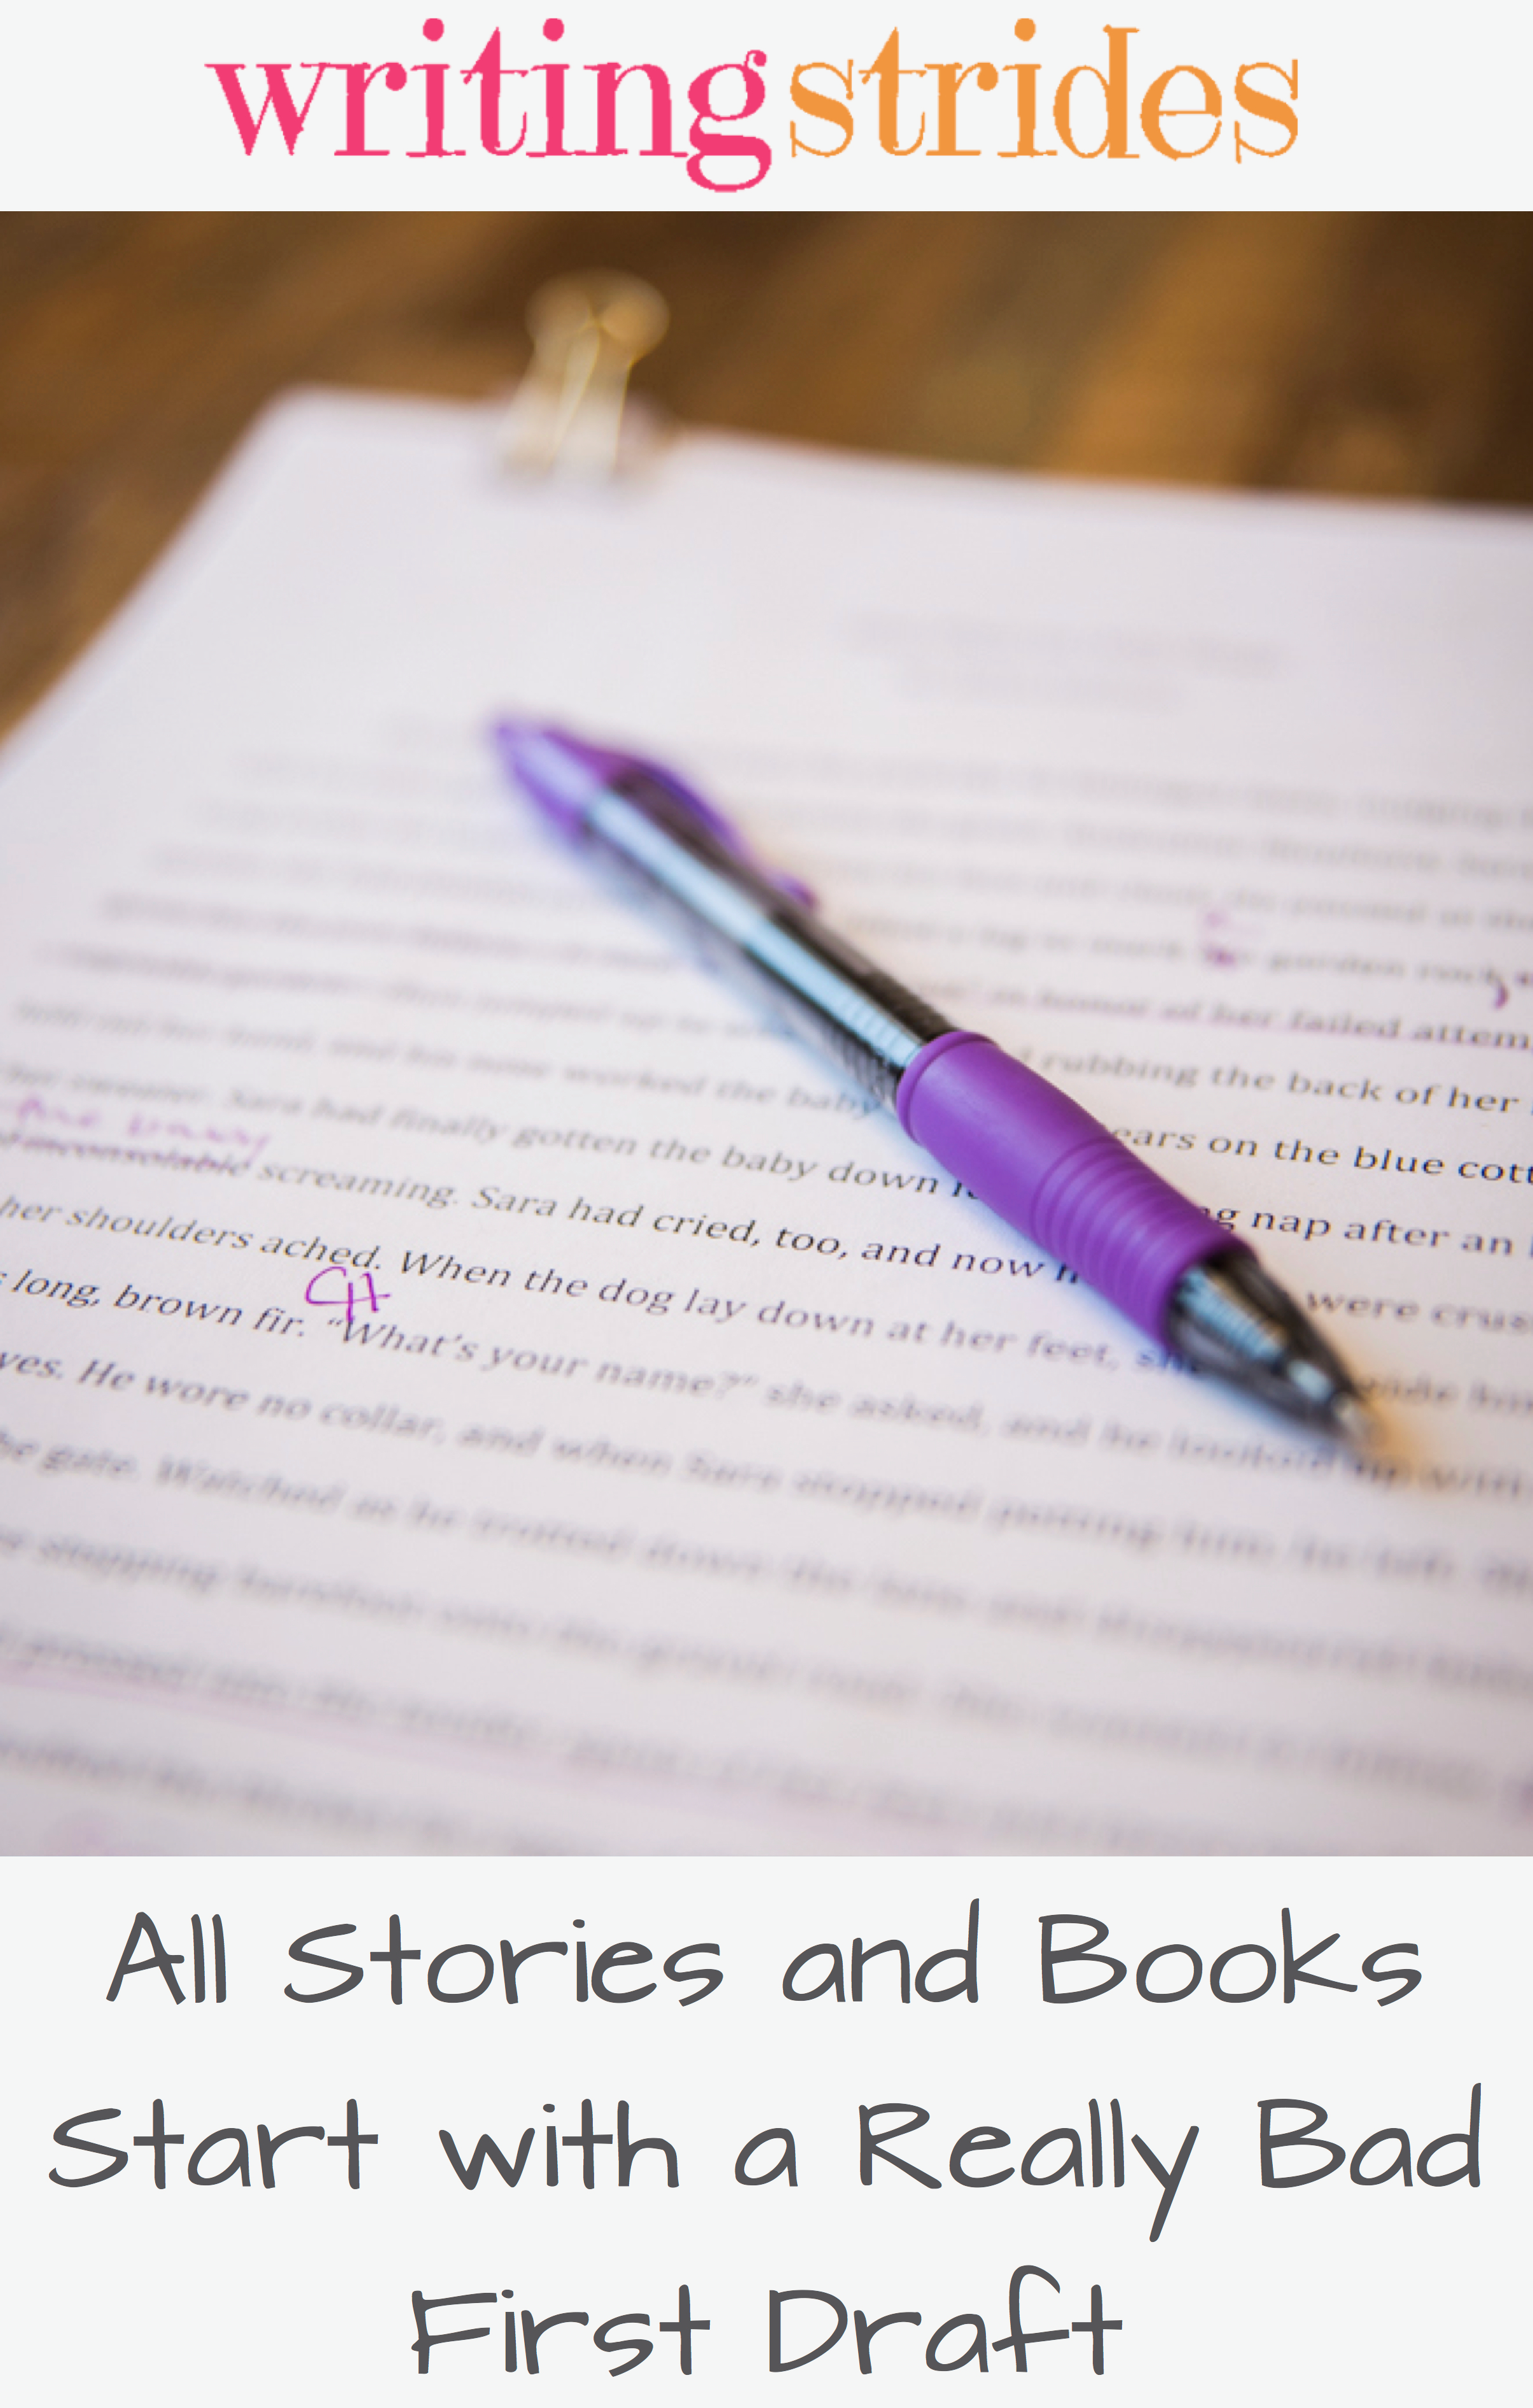 All stories and books start with a really bad first draft